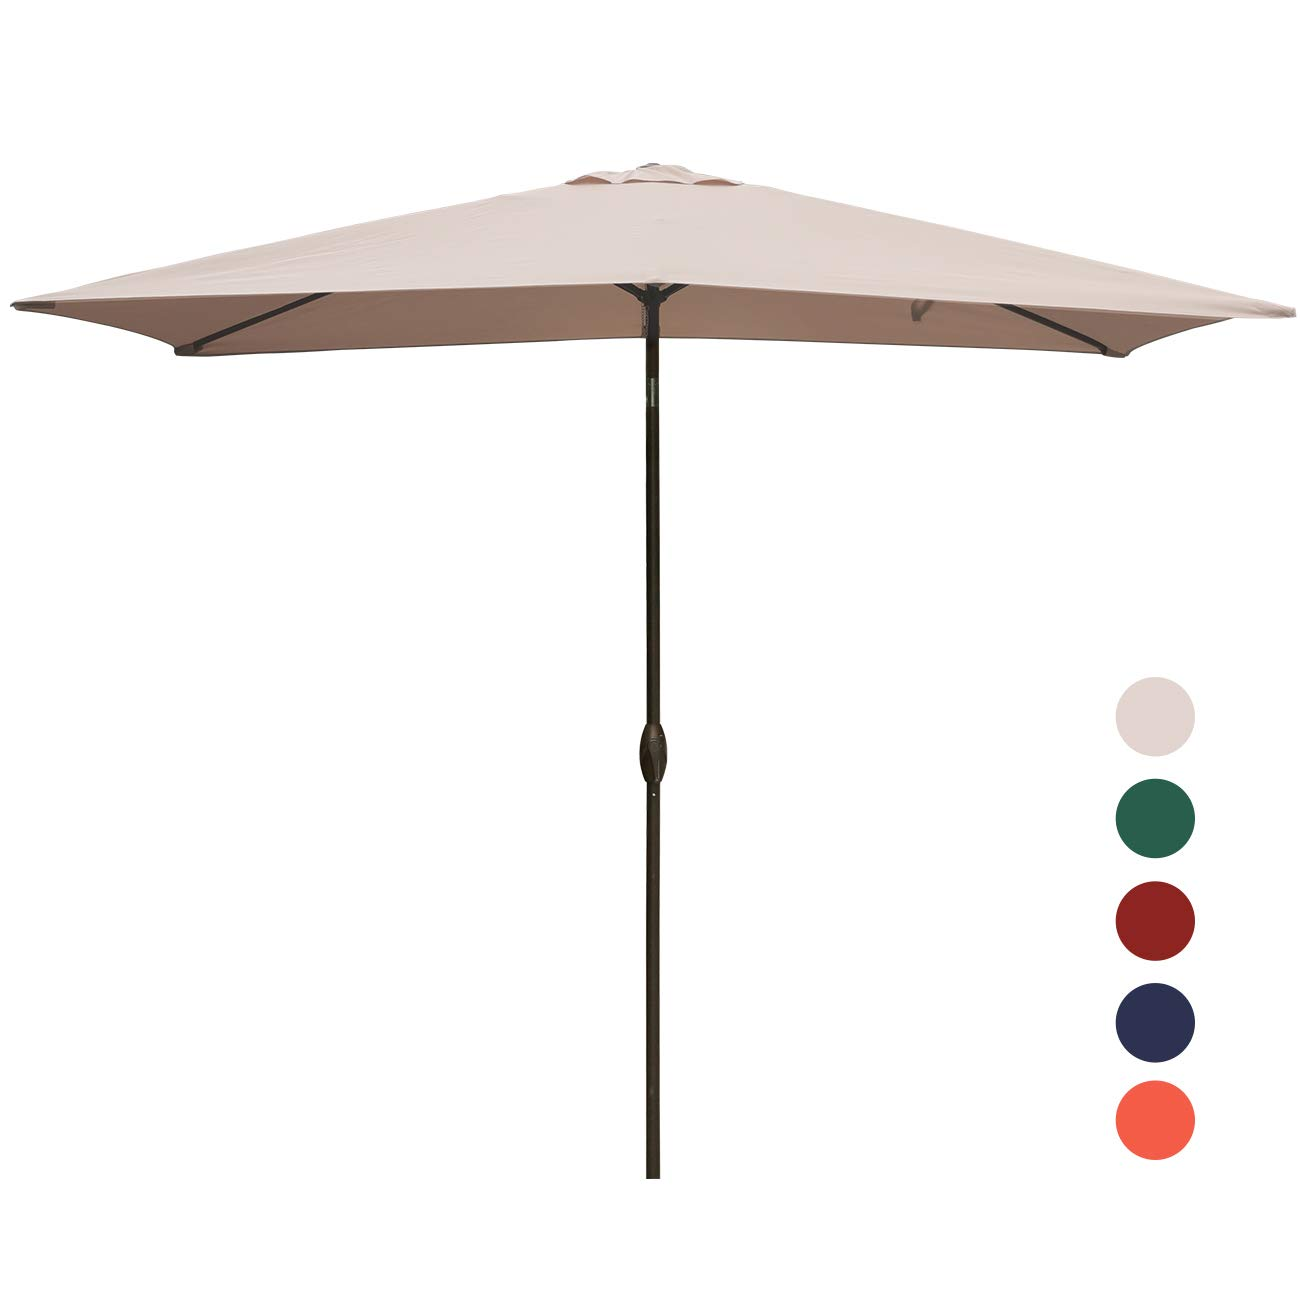 KINGYES Rectangular Patio Table Umbrella Garden Umbrella with Tilt and Crank for Outdoor, Beach Commercial Event Market, Camping, Swimming Pool (6.6 by 9.8 Ft, Beige) by KINGYES